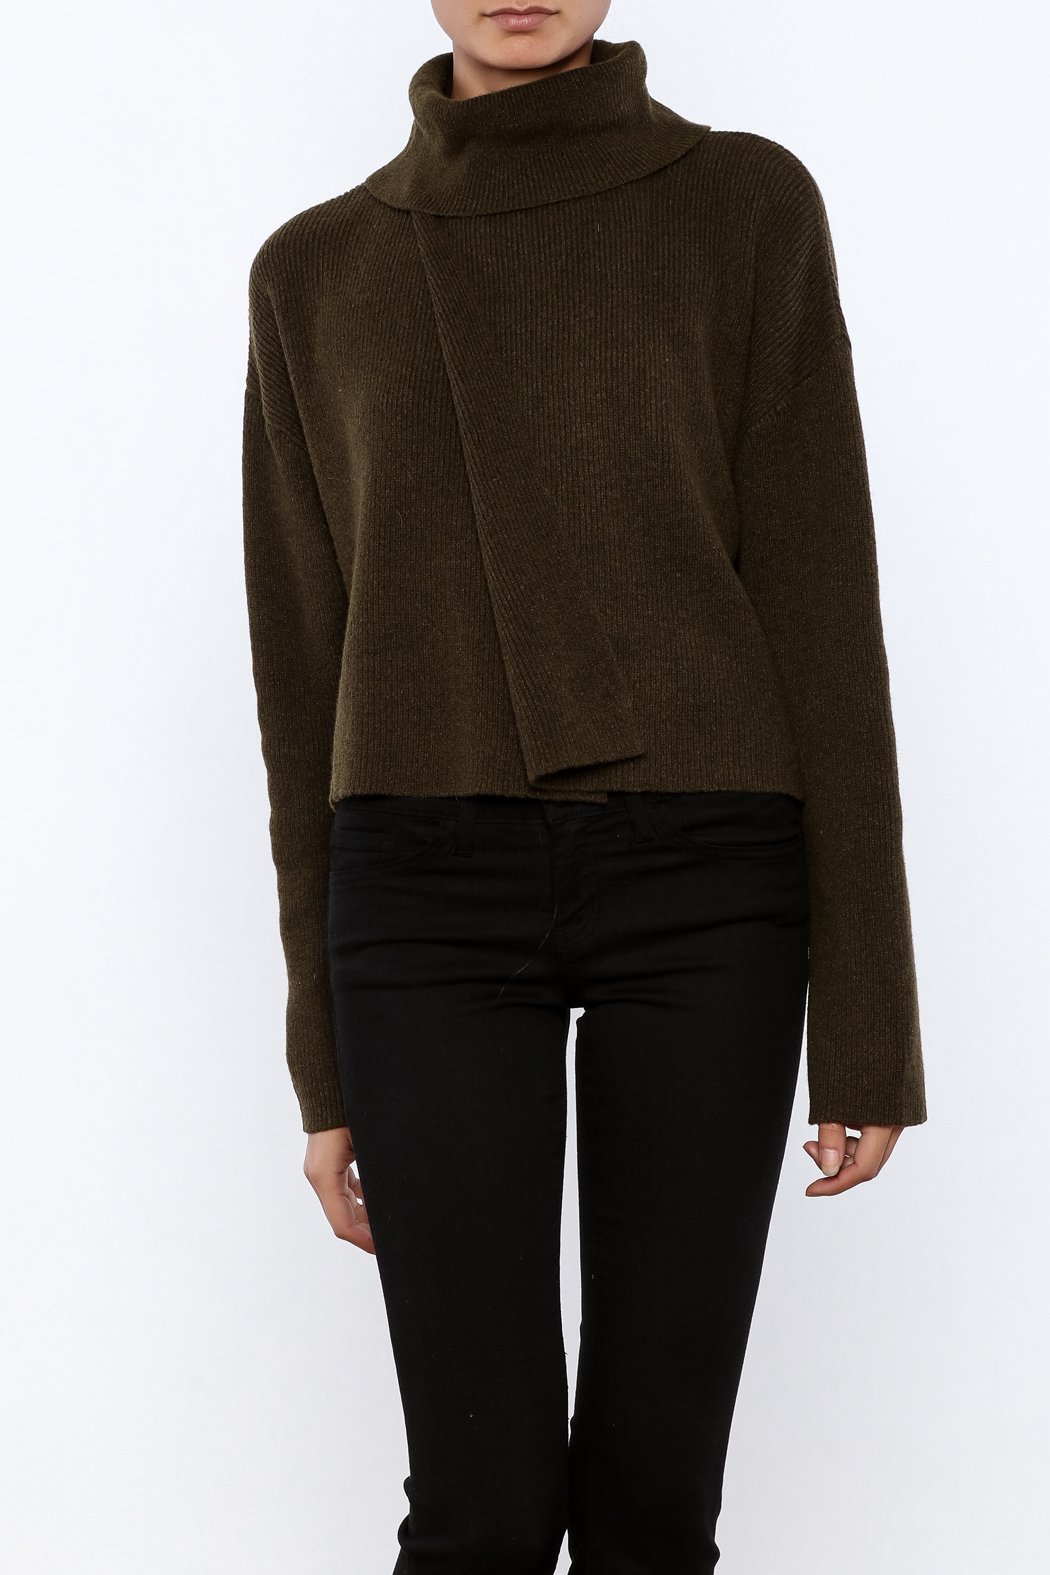 J.O.A. Turtleneck Crop Sweater - Main Image